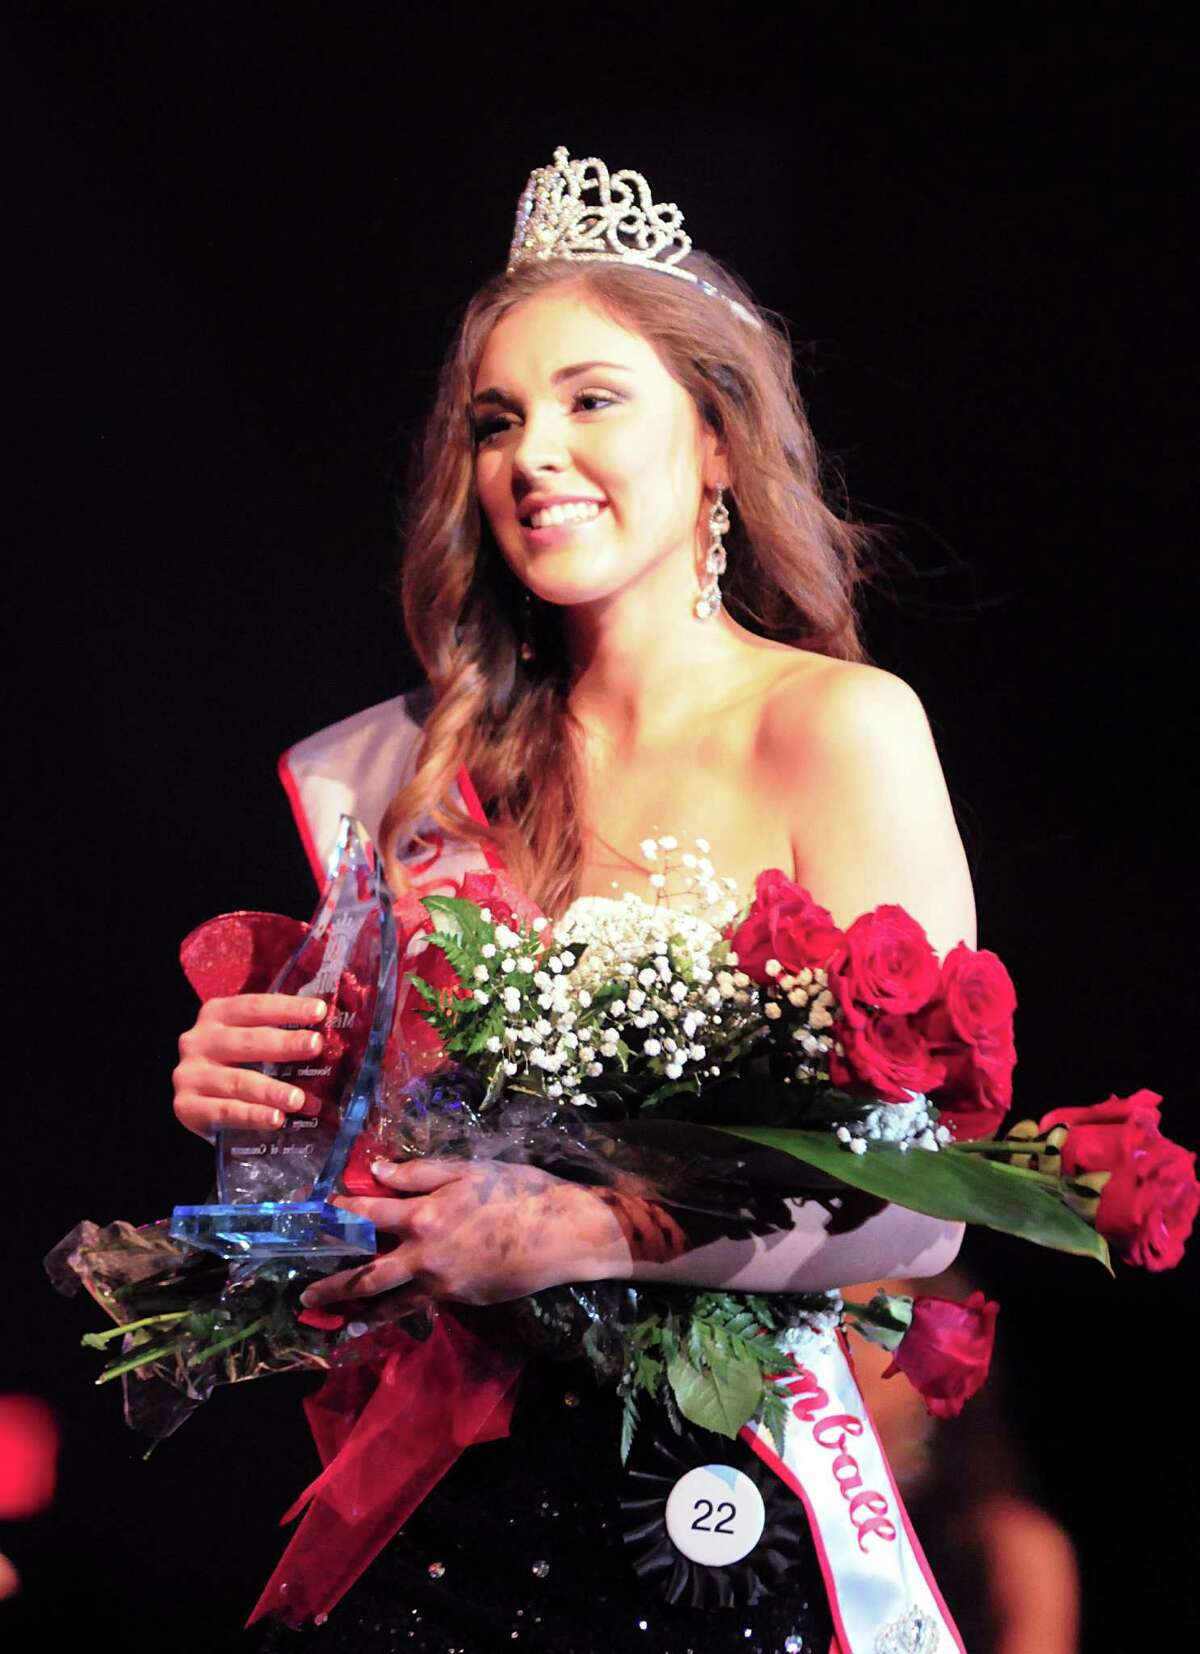 Julia Gimblet wears her new crown after being named Miss Tomball during The Miss Tomball 2015 Pageant at the Performing Arts Center at Salem Lutheran Church in Tomball. Almost a thousand spectators attended the event. Photograph by David Hopper